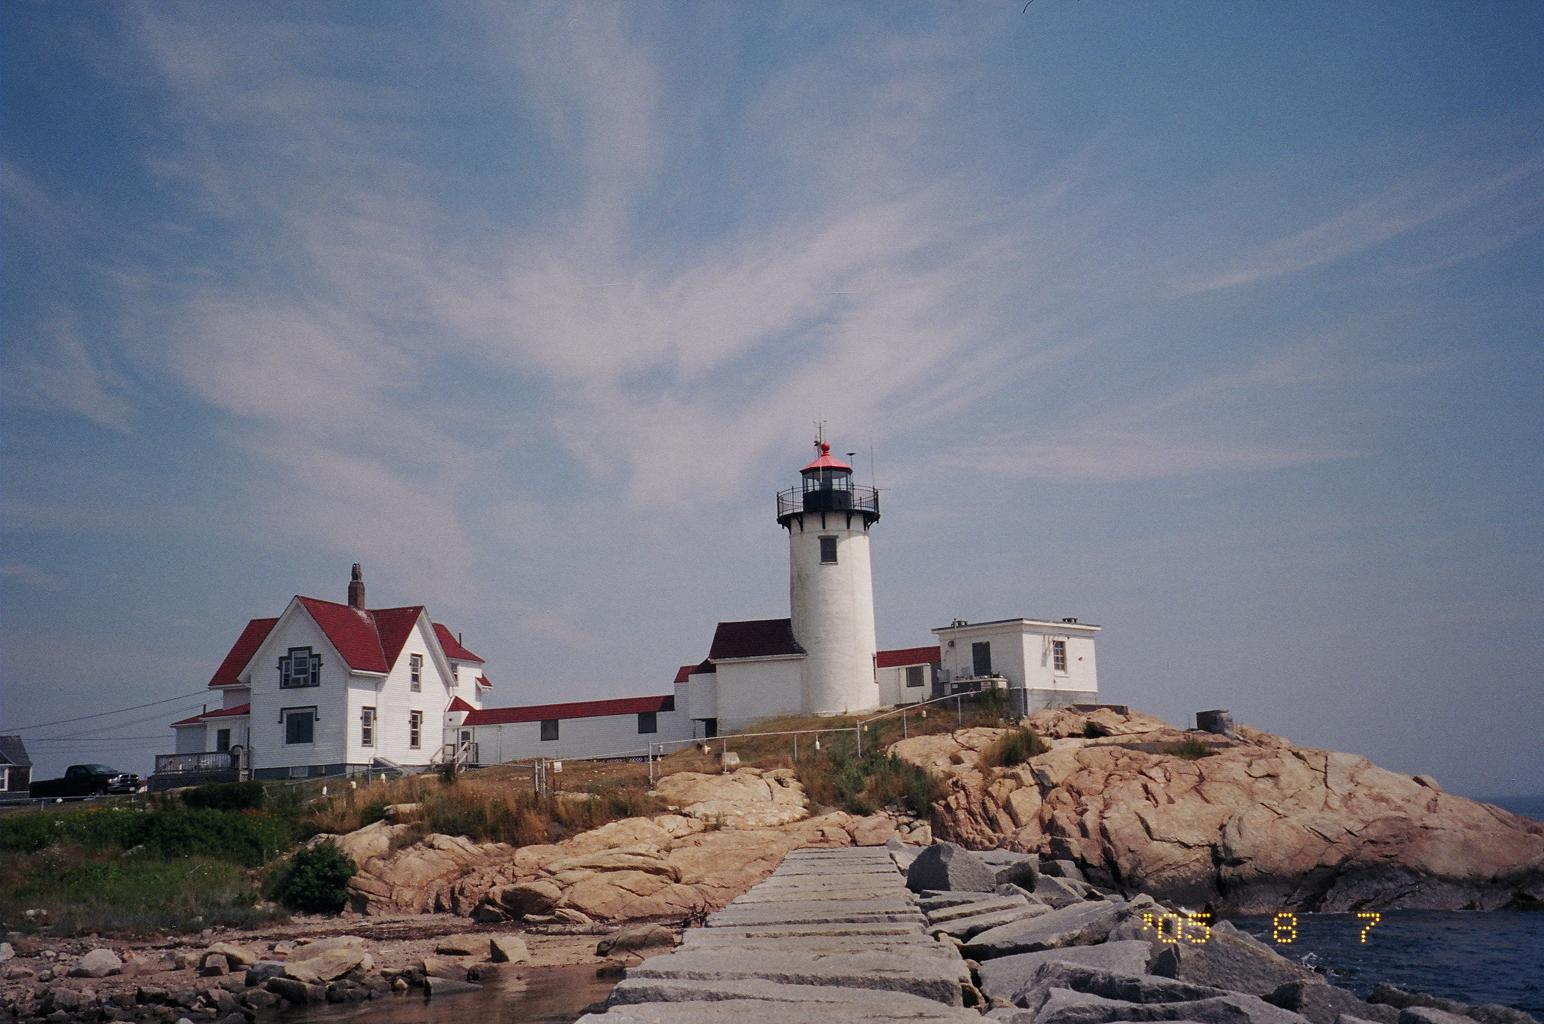 d972eb7c-3b9b-4795-85cf-69c270ffef6c18 06 11 Lighthouse pic home page